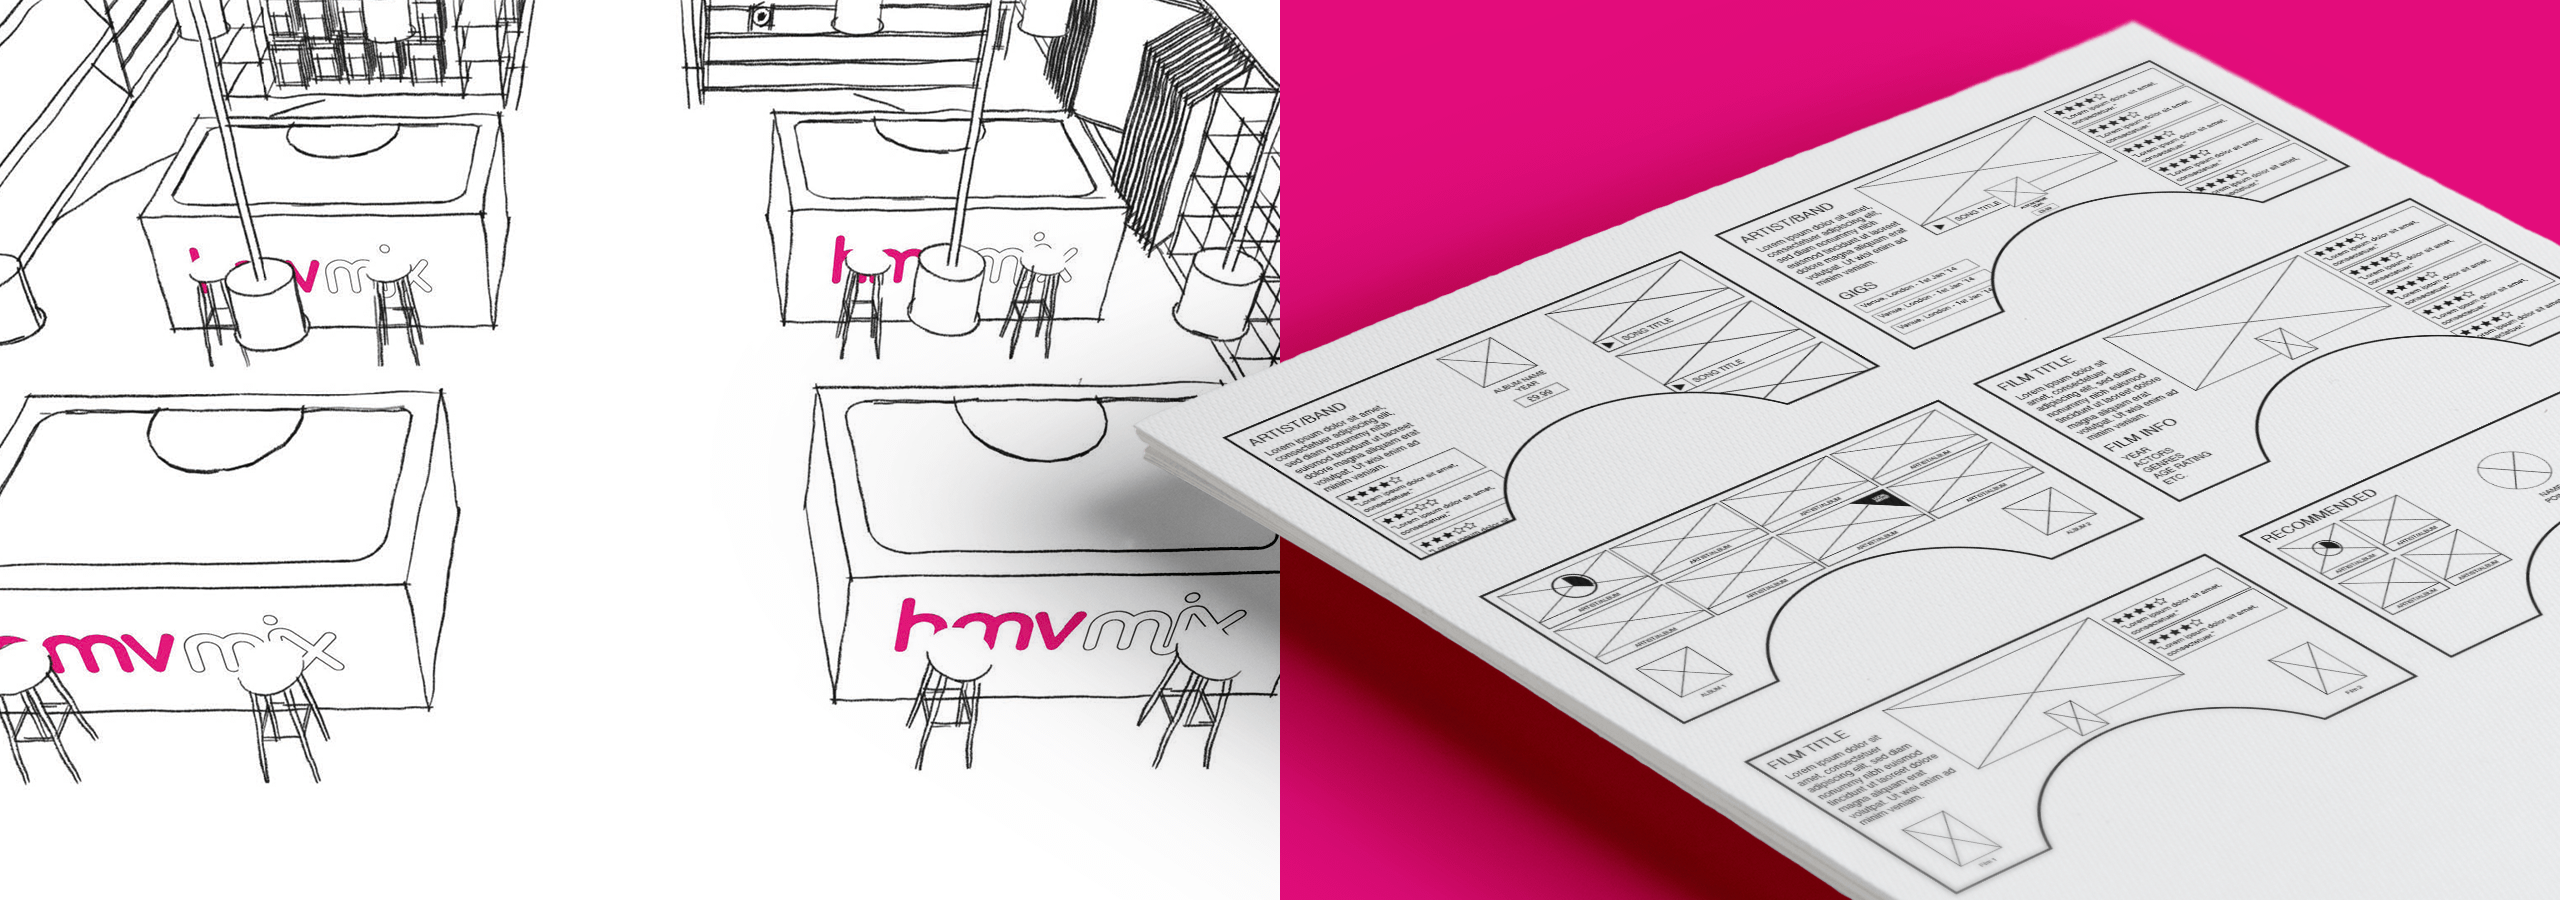 hmv_sketches